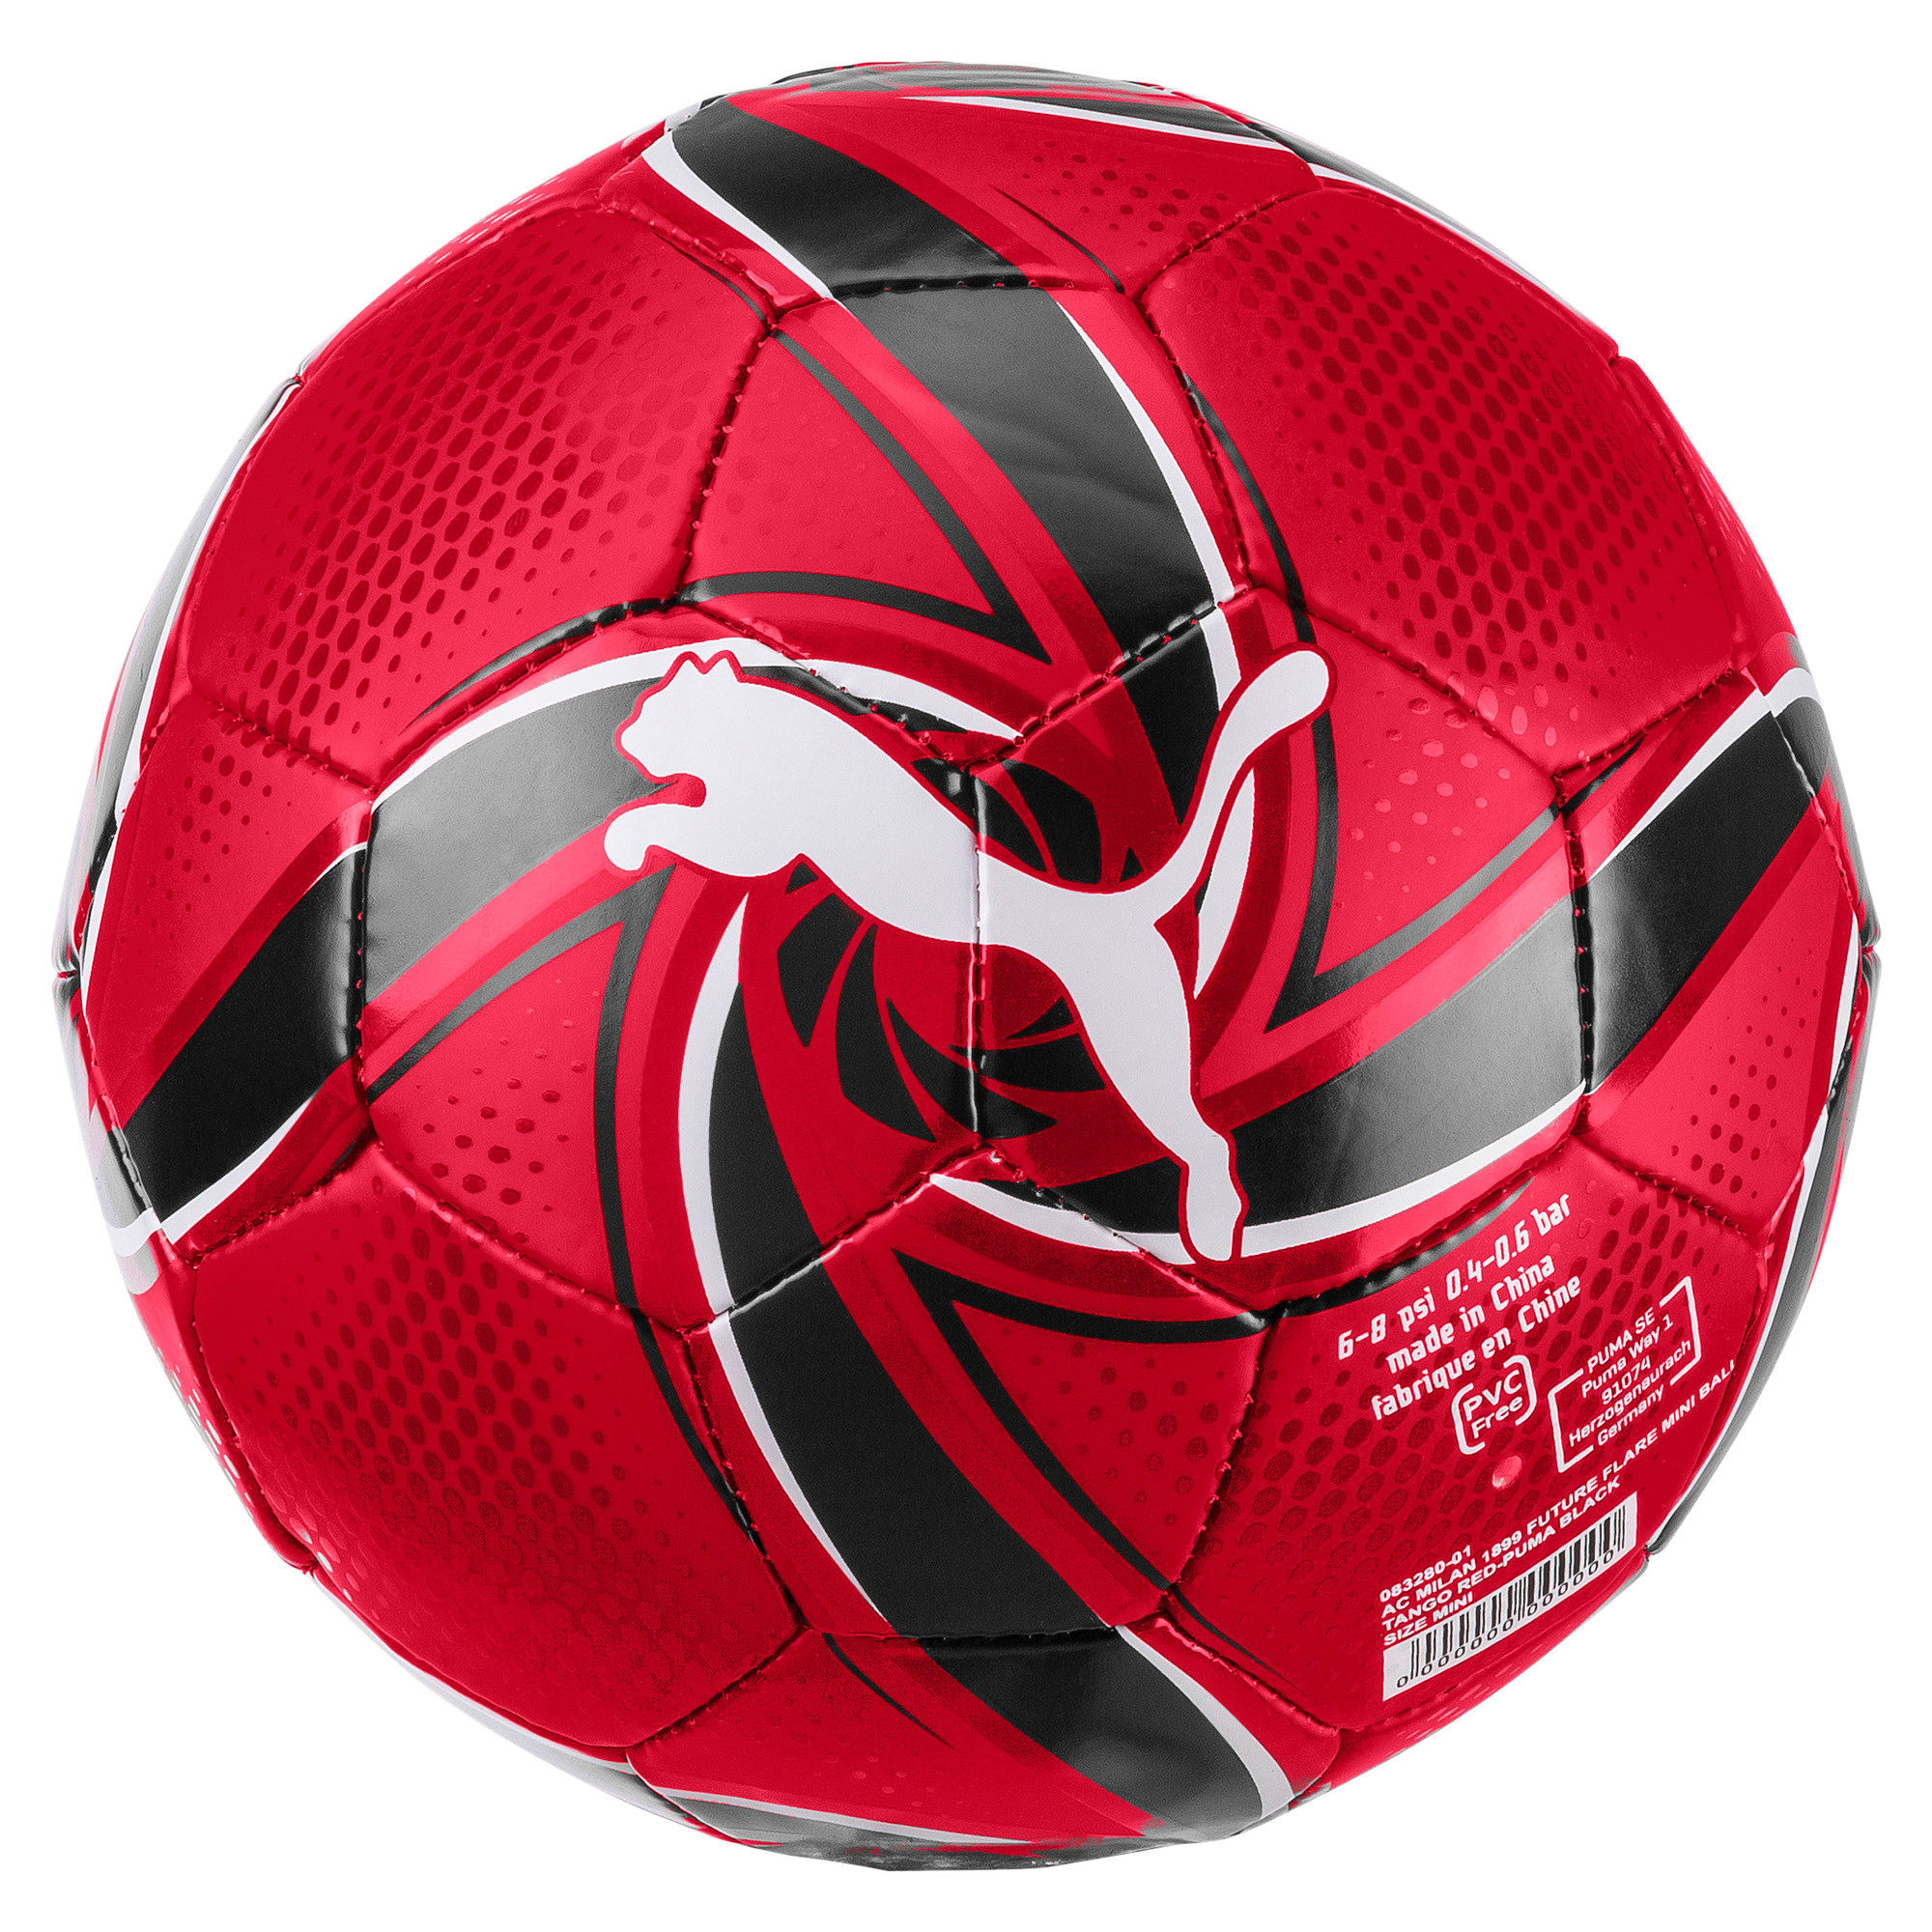 Thumbnail 1 of AC Milan FUTURE Flare minibal, Tango Red -Puma Black, medium